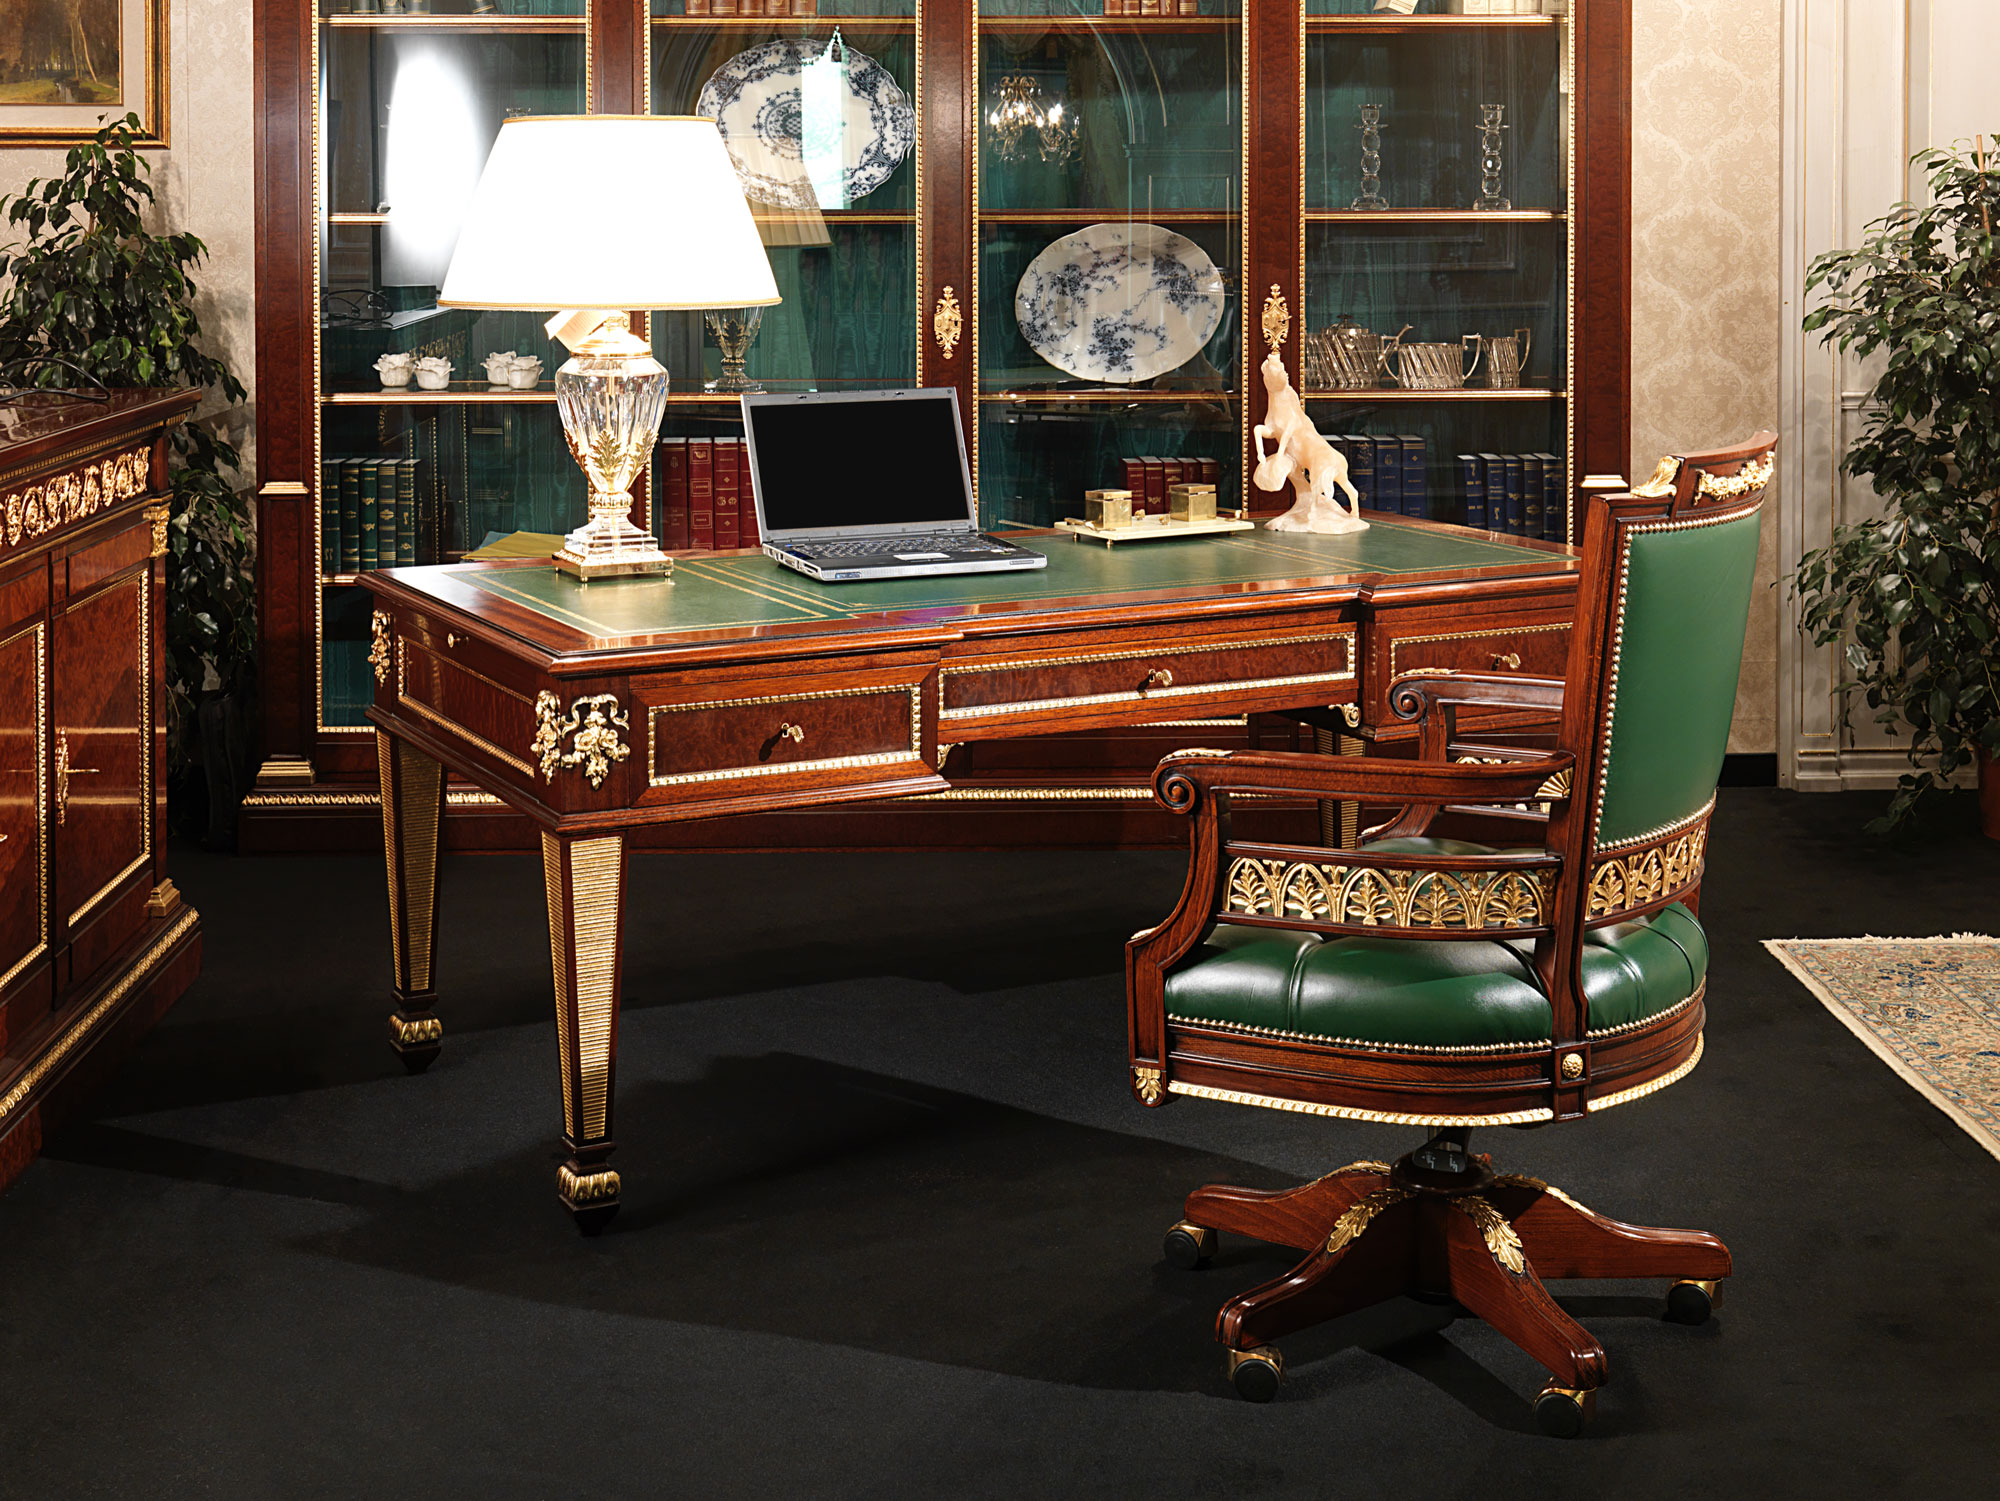 Luxury office furniture in classic style Upscale home office furniture